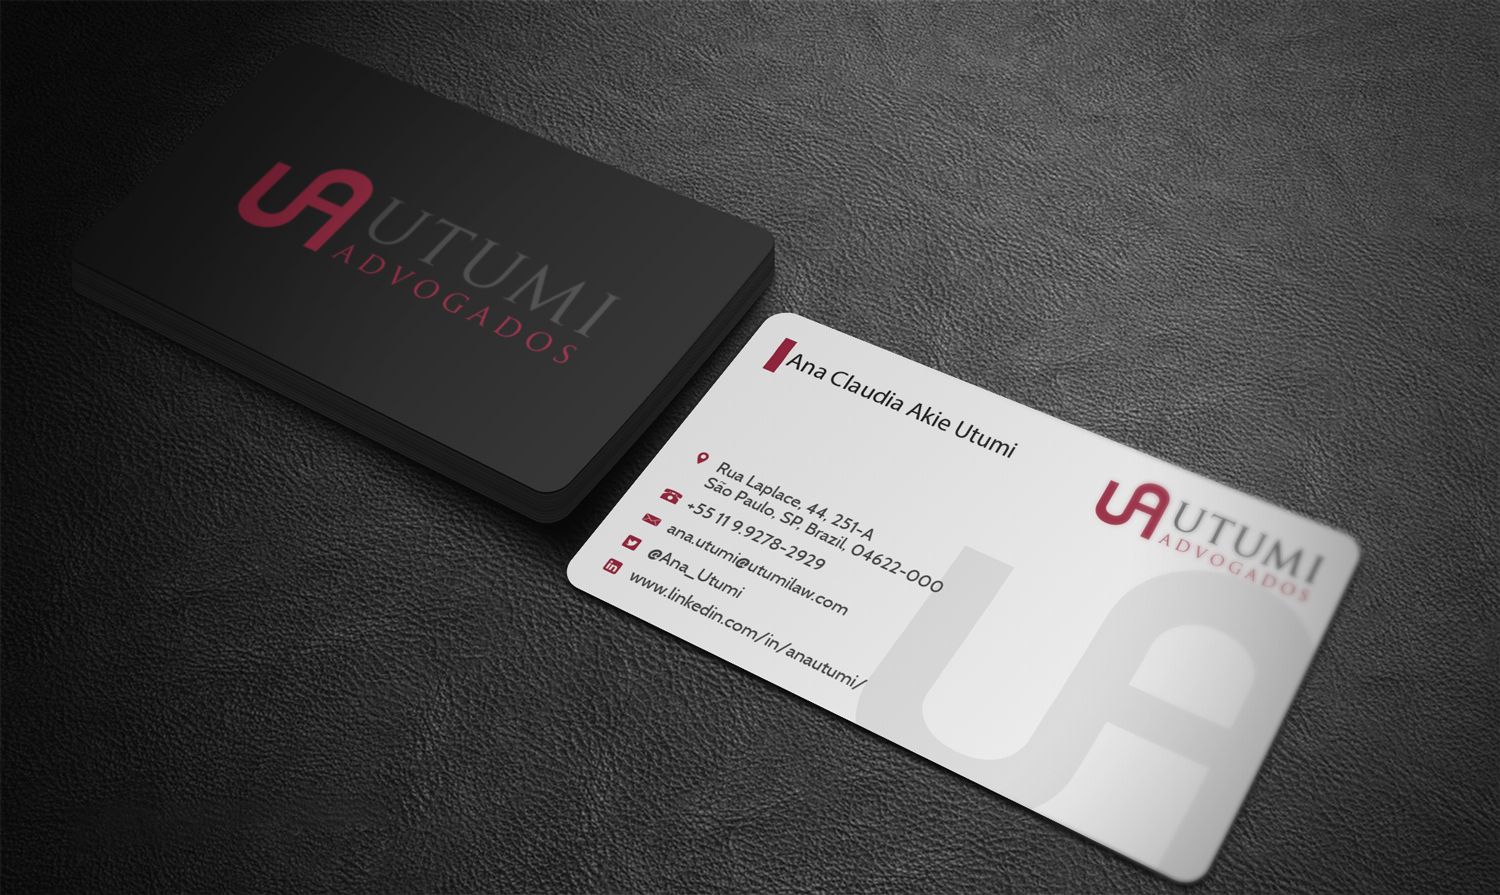 Modern professional business card design for utumi advogados by business card design by riz for business card international tax design 15770930 magicingreecefo Gallery